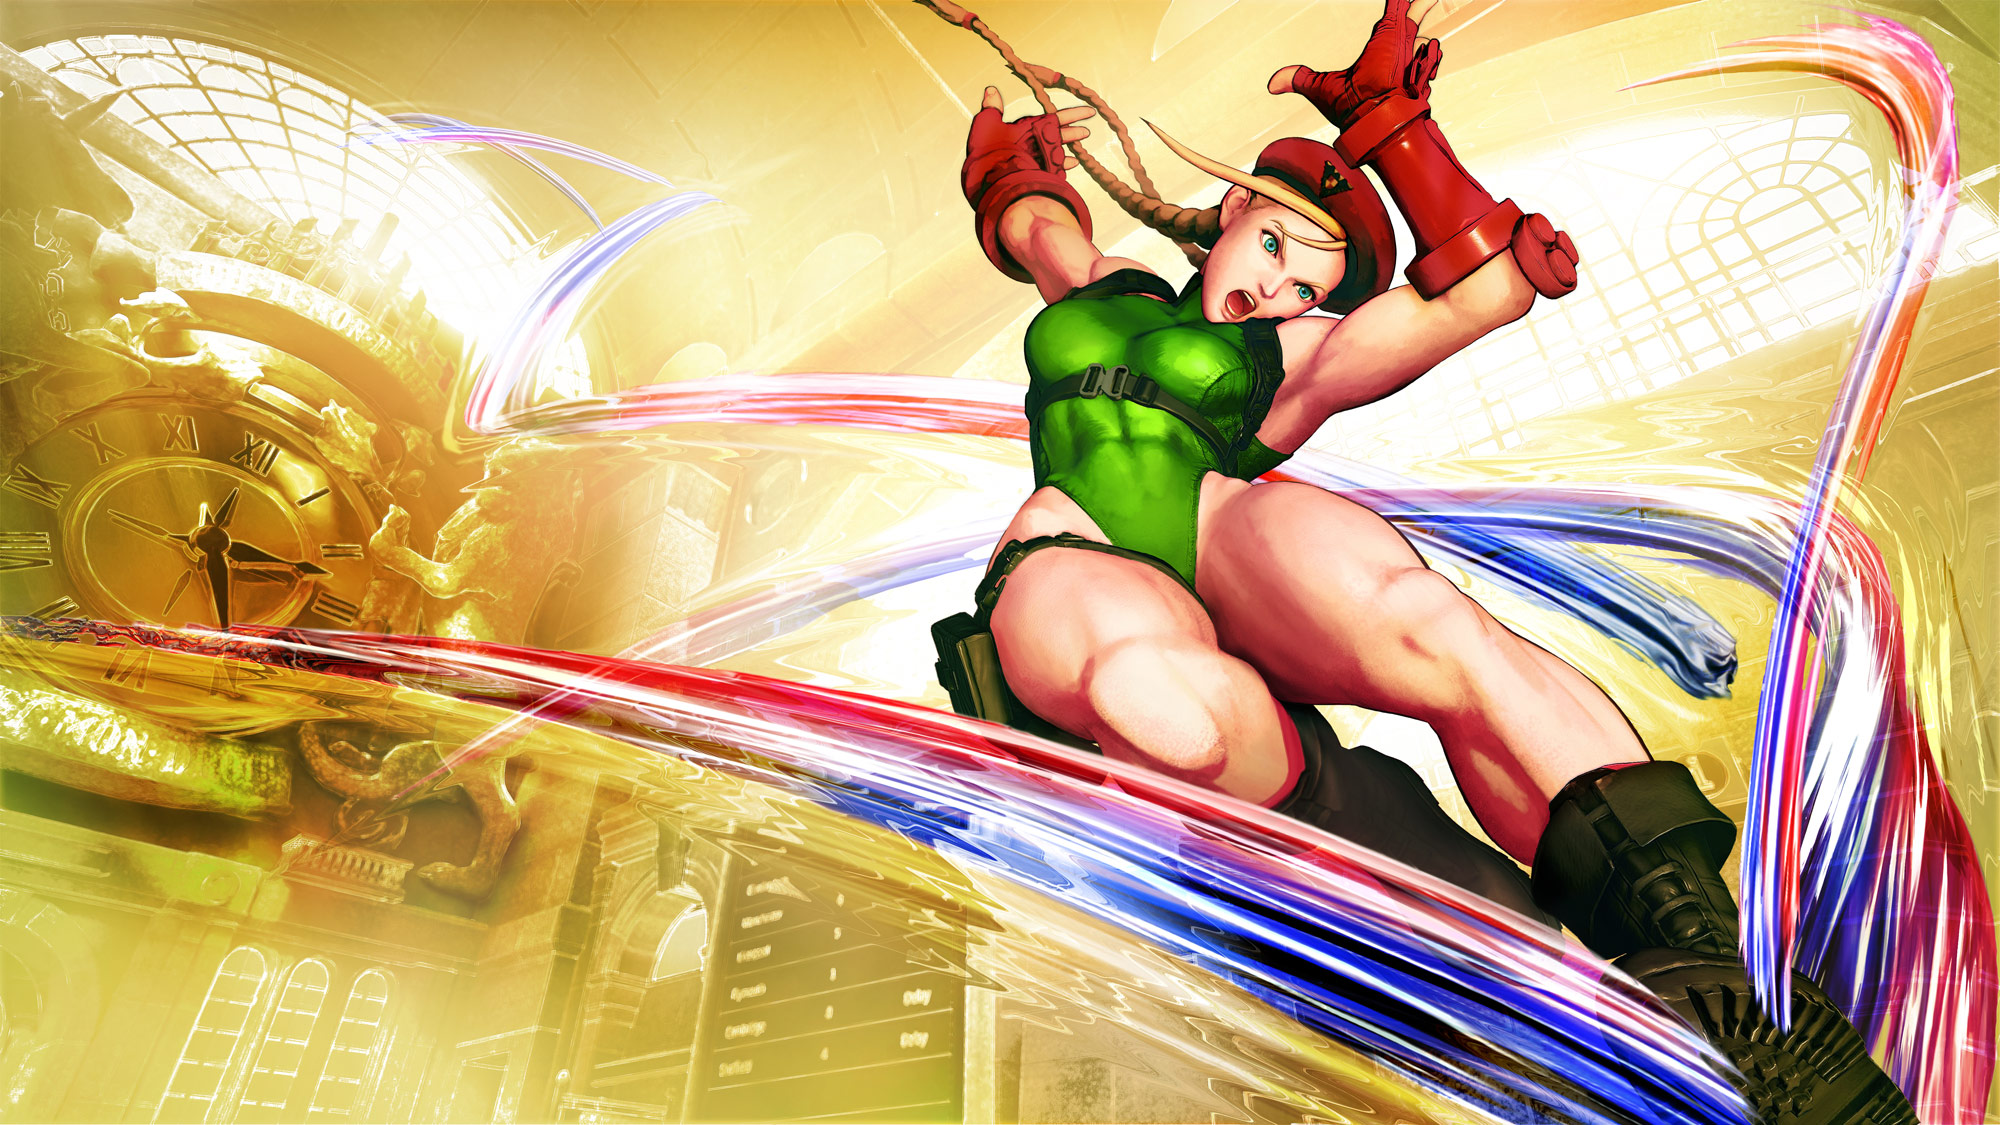 Birdie and Cammy artwork in Street Fighter 5 1 out of 2 image gallery